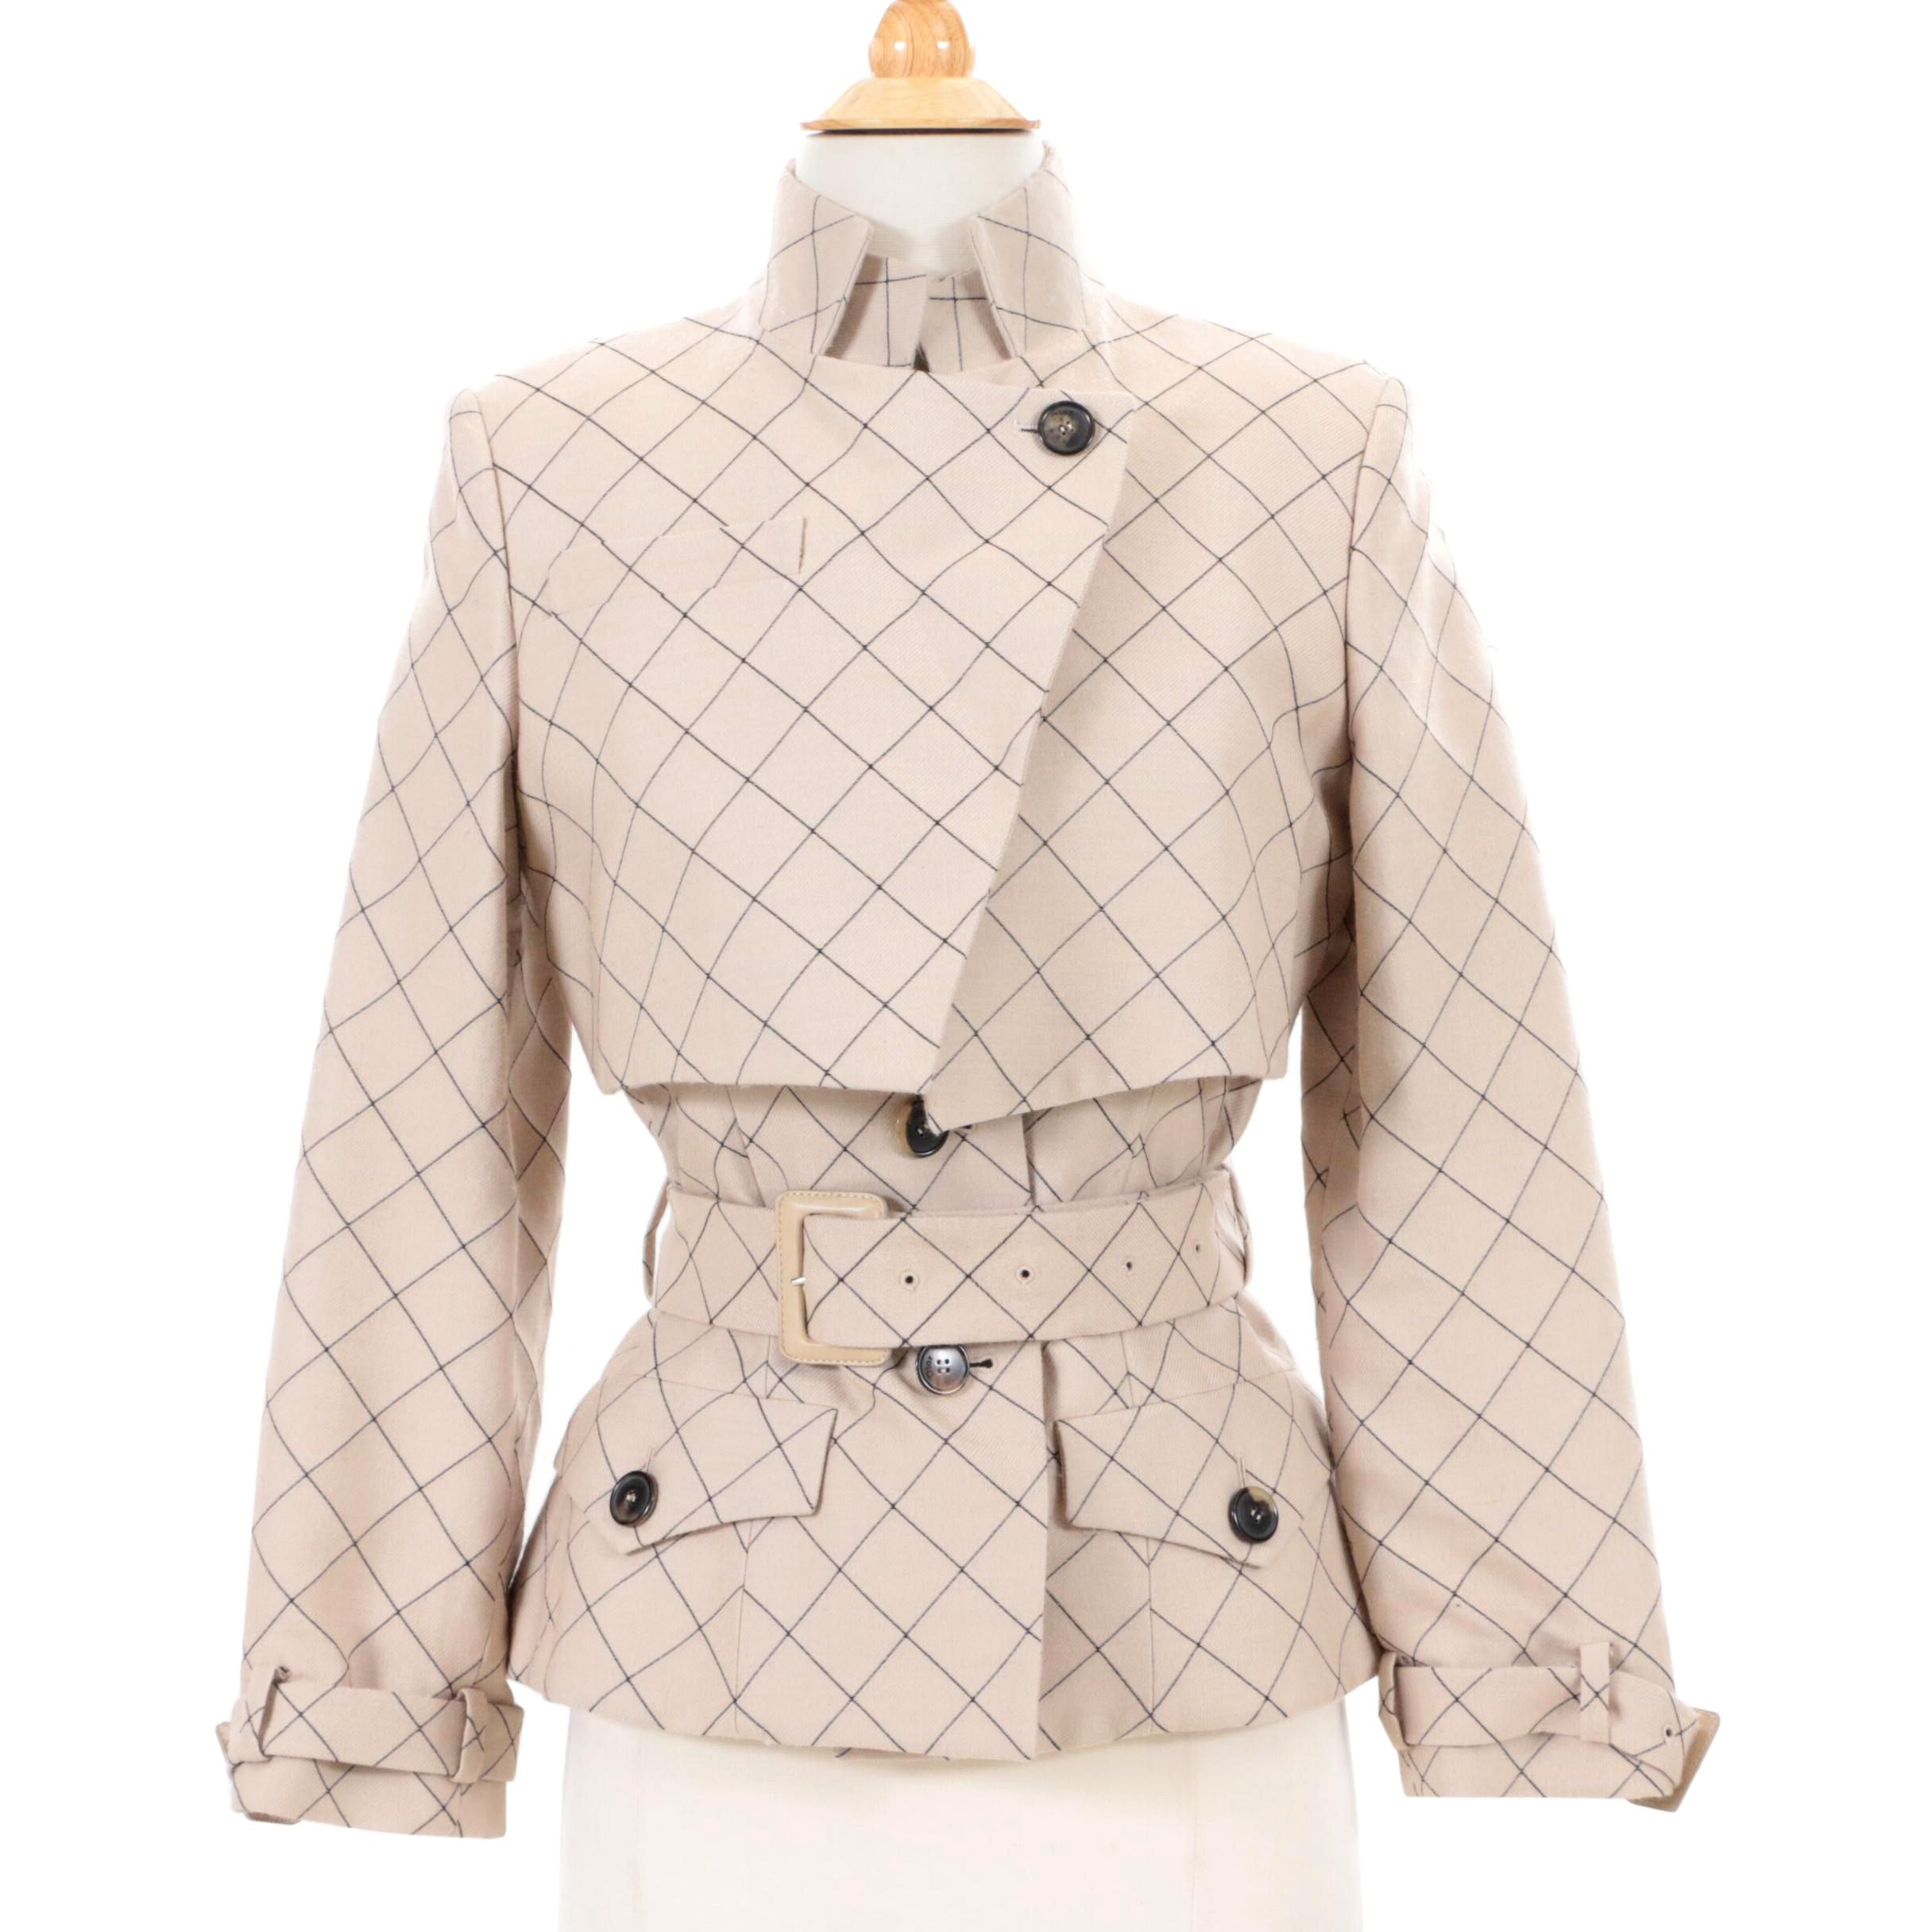 Christian Dior Paris Windowpane Print Wool Blend Jacket